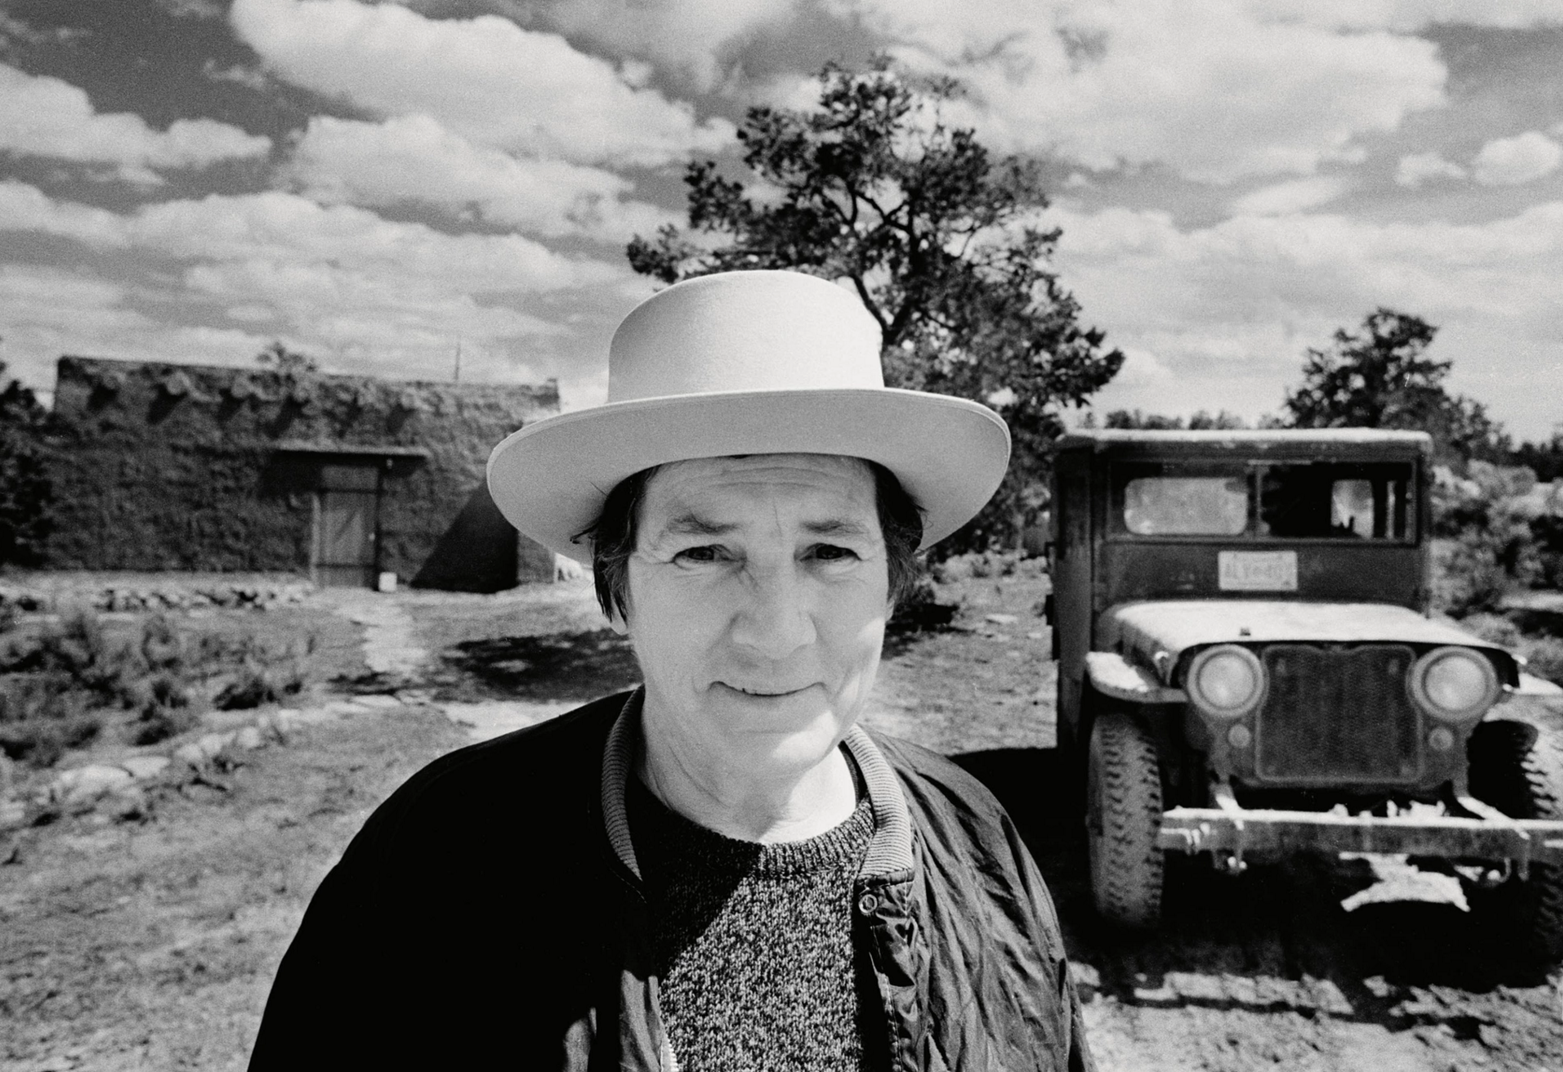 Black-and-white photograph of Agnes Martin standing on a dirt road; behind her are her adobe house, trees, and an old jeep. She is a light-skinned adult woman with short hair, seen from the bust up, wearing a jacket, sweater, and a white brimmed hat.